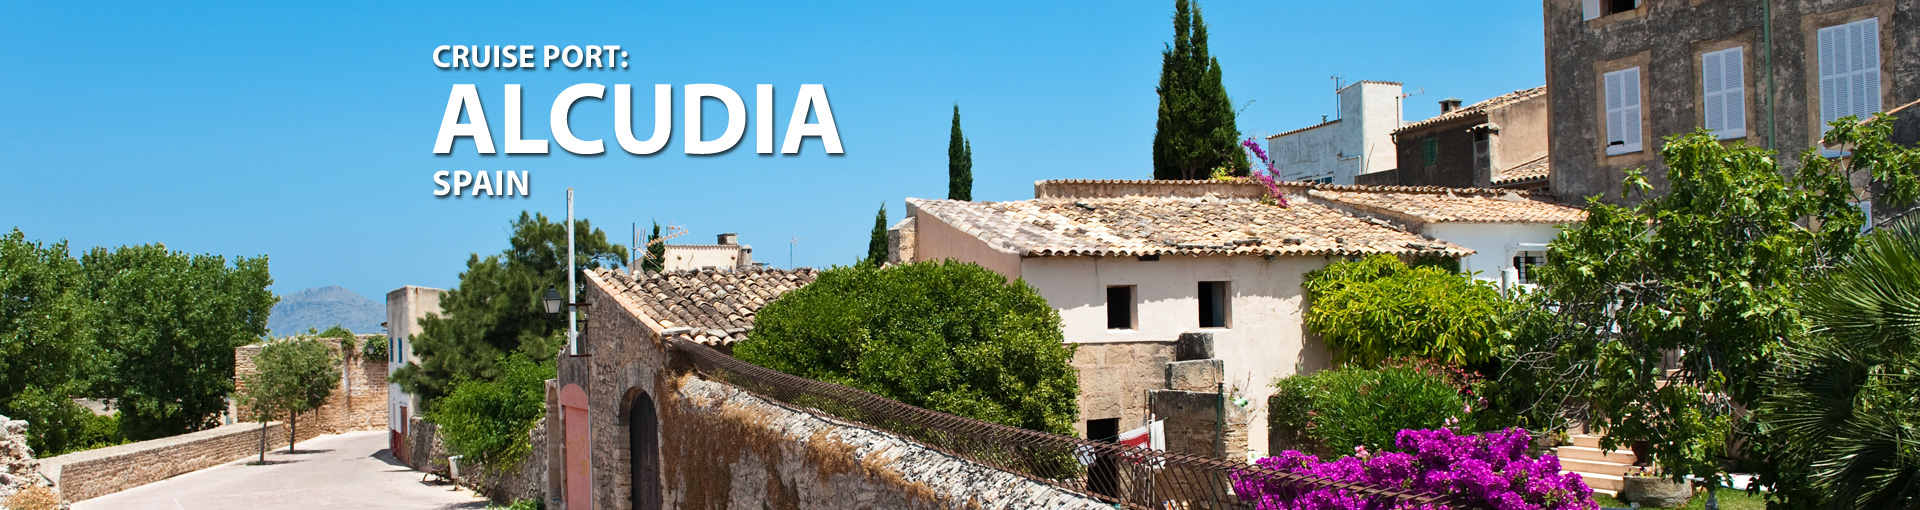 Cruises to Alcudia, Spain